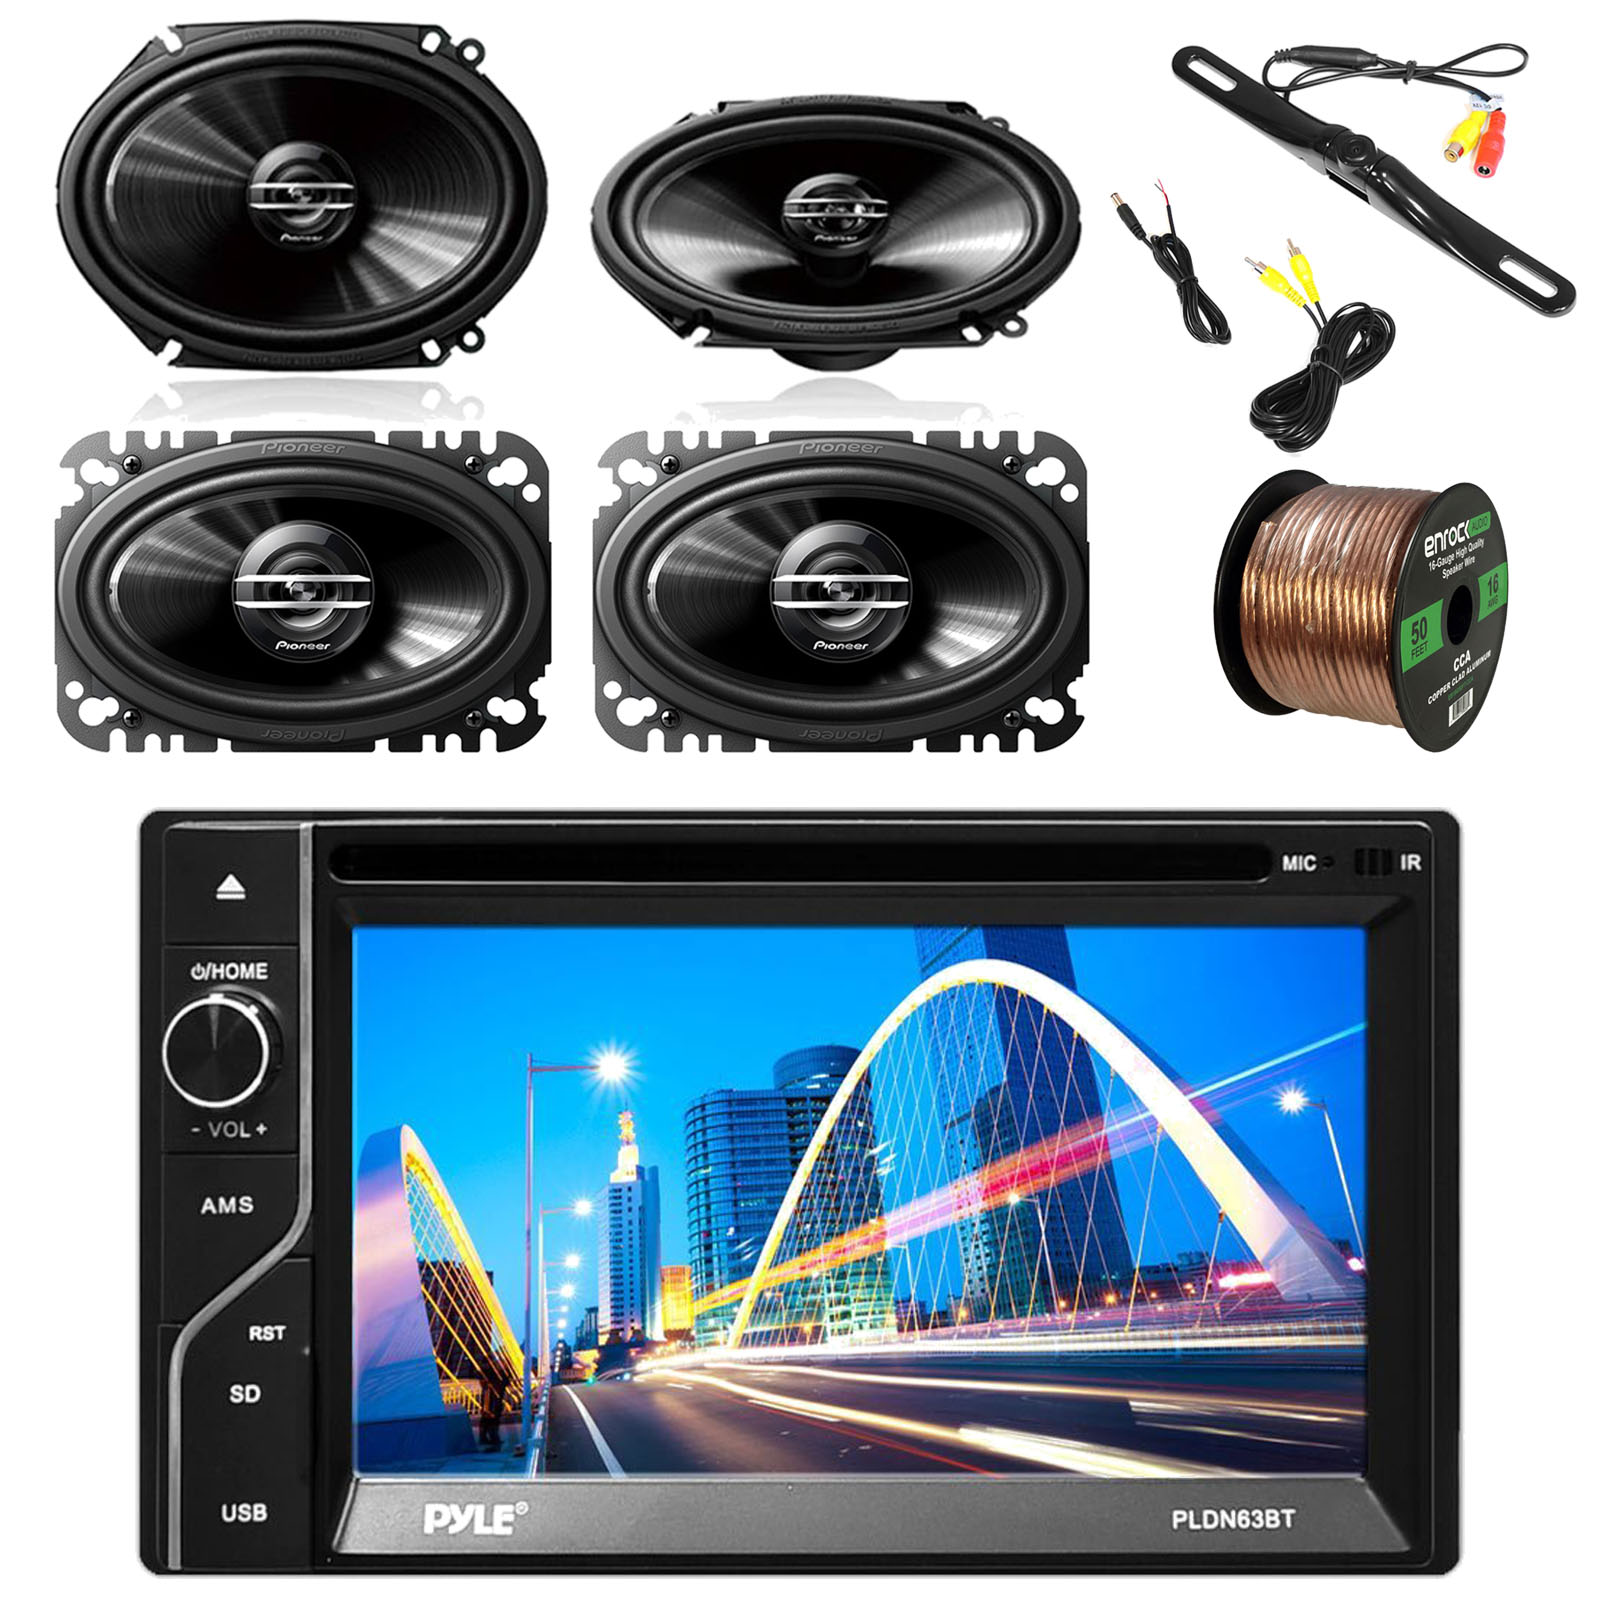 """Pyle 6.5'' 2-DIN Touch Screen BT Receiver w/Pyle License Plate Mount Rear View Color Camera, Pioneer 250W 6x8"""" 2-Way Speakers(Pair), Pioneer 4x6"""" 2-Way 200W Car SPKR(Pair) & Enrock 16G 50' SPKR Wire"""